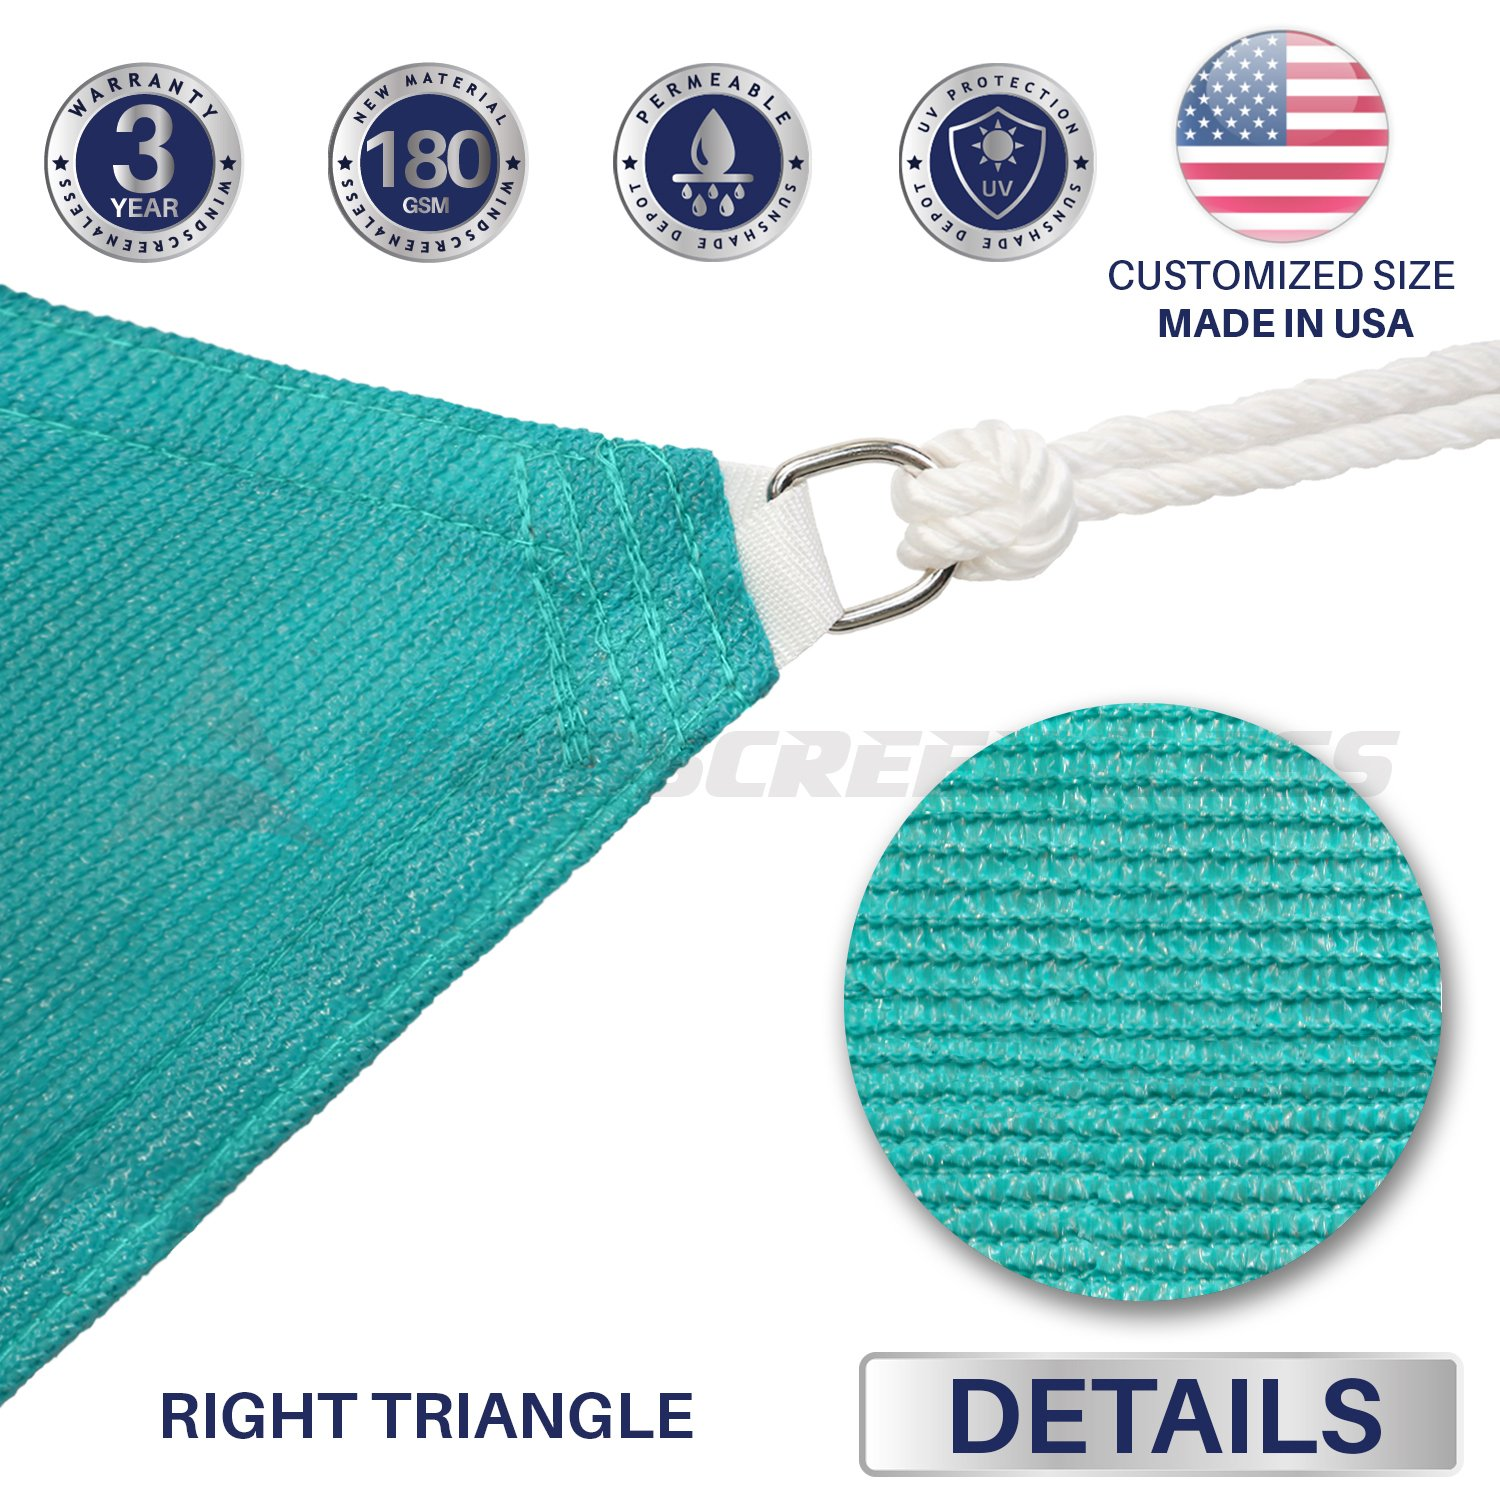 Windscreen4less 18 x 18 x 26 Right Triangle Sun Shade Sail with 8 inch Hardware Kit – Turquoise Green Durable UV Shelter Canopy for Patio Outdoor Backyard – Custom Size